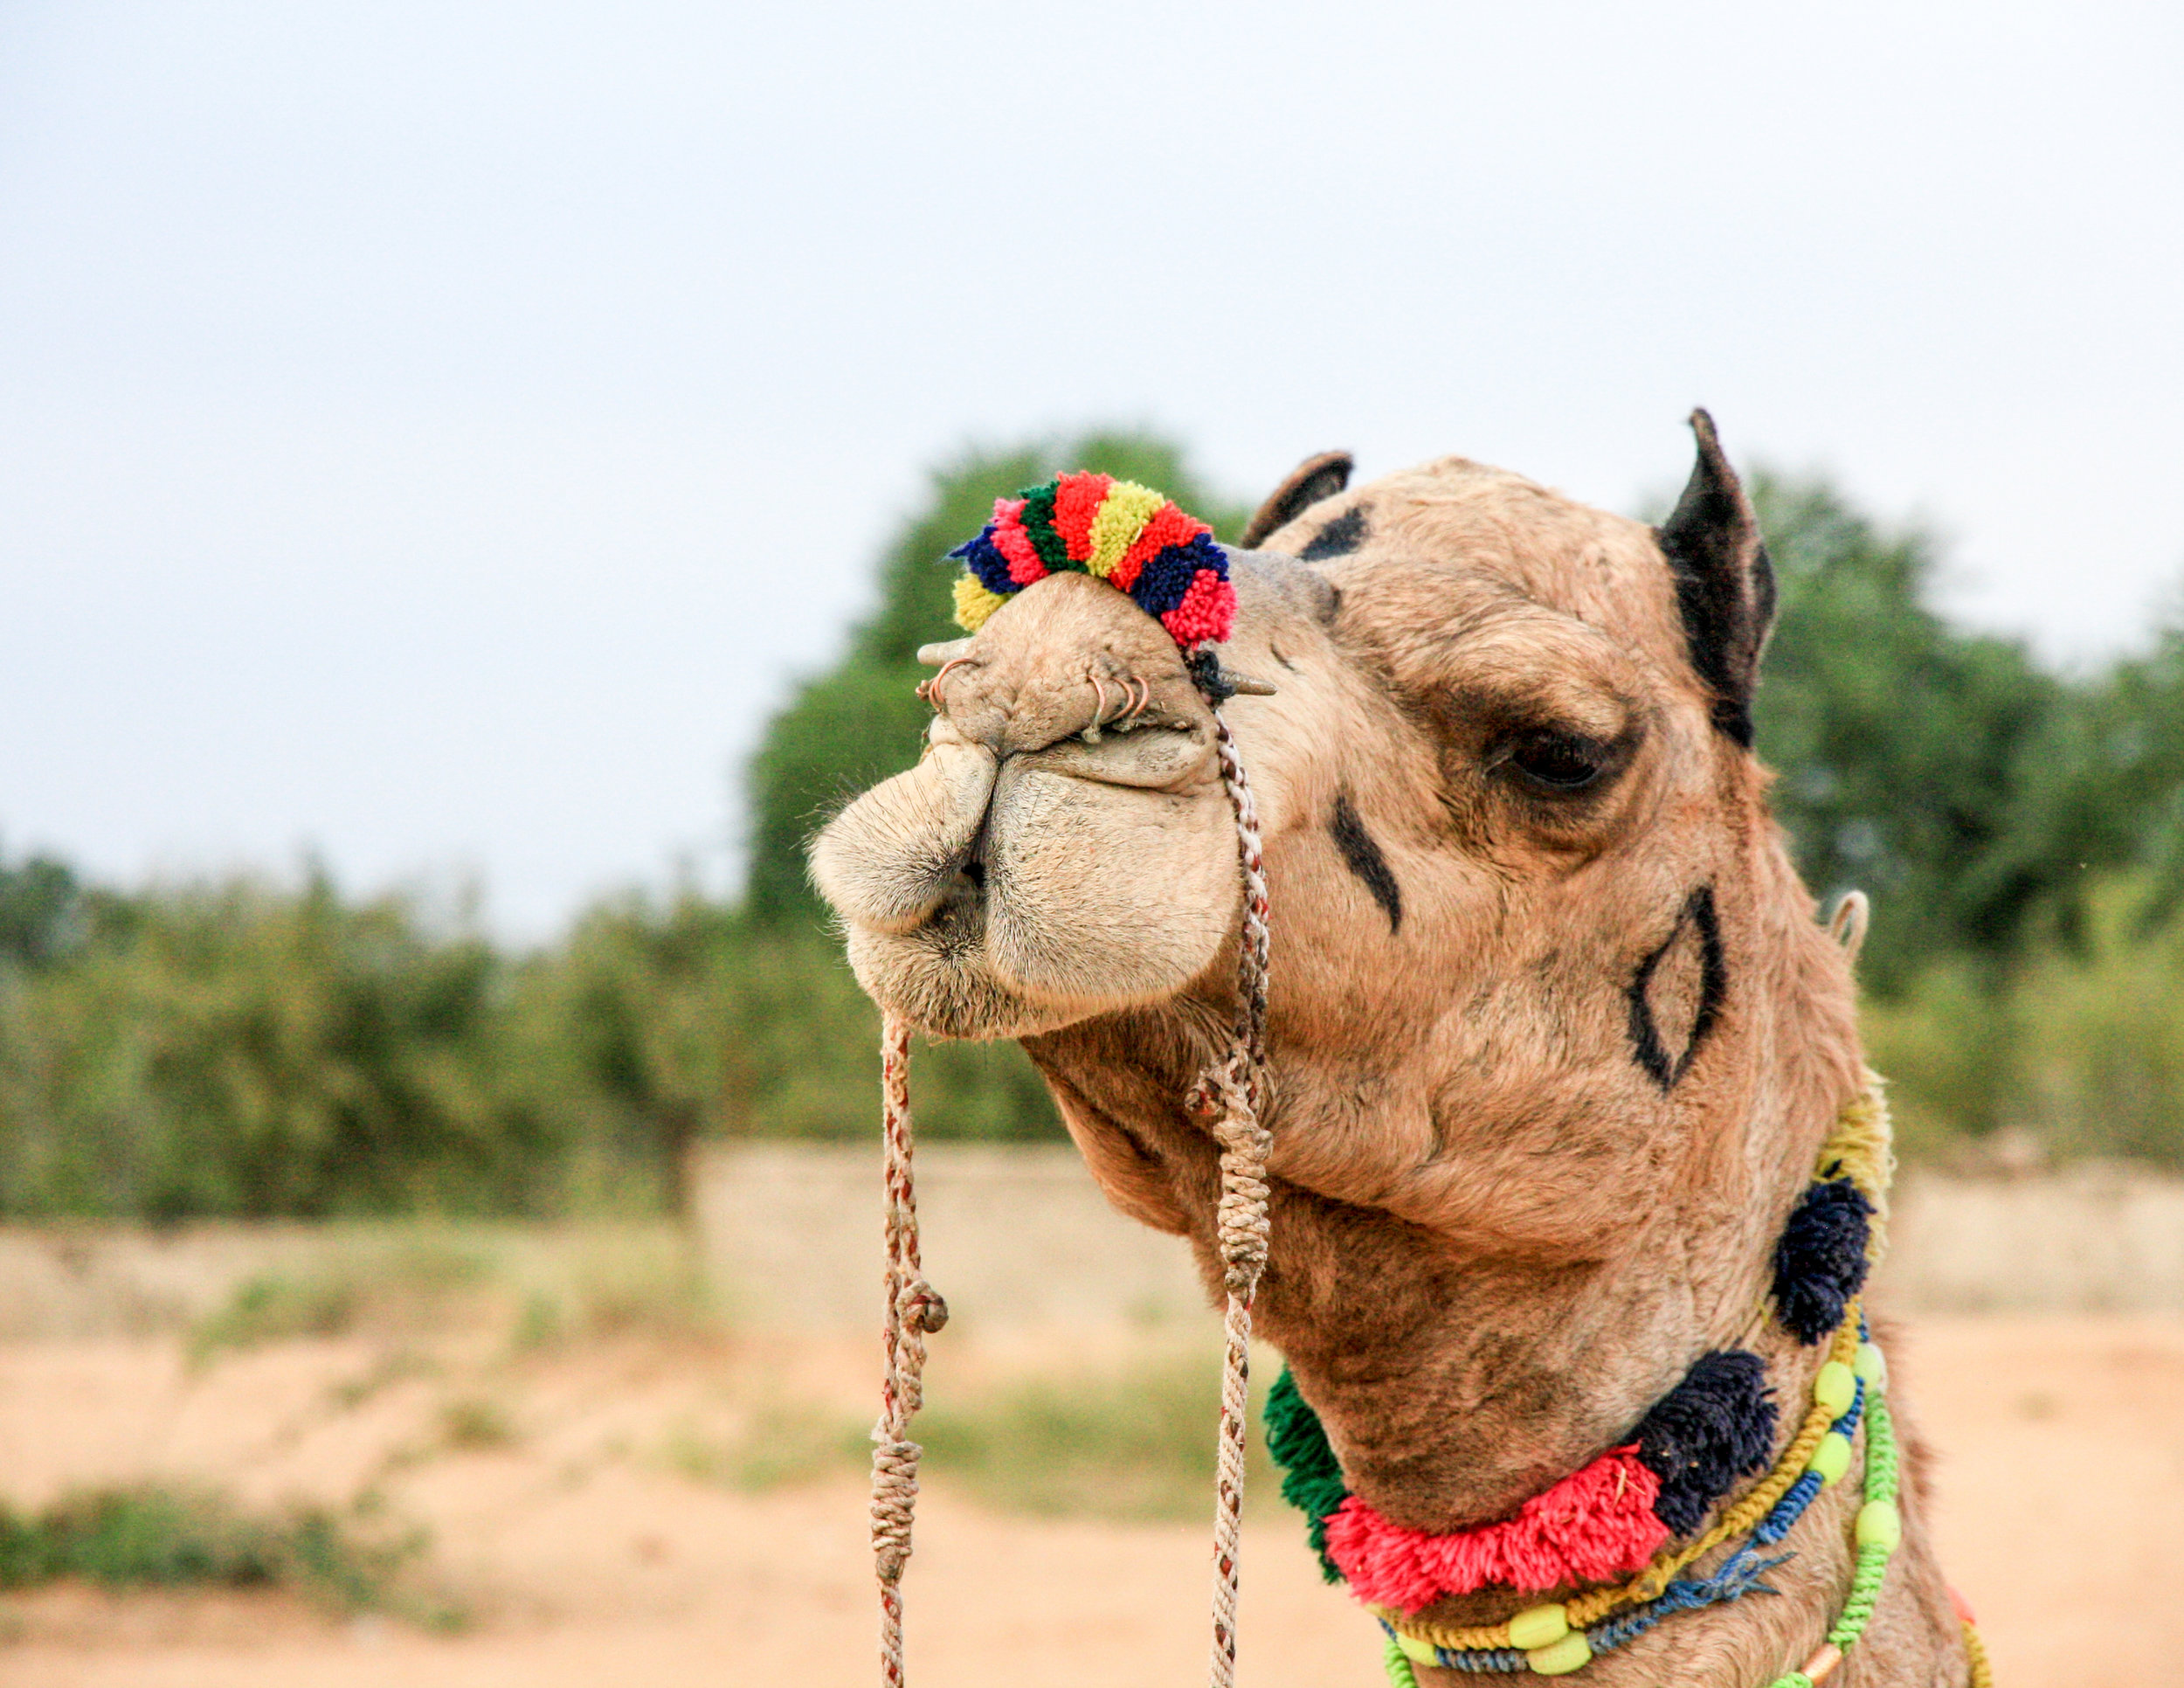 Tourist places in Rajasthan: Camel tour into the desert, Pushkar